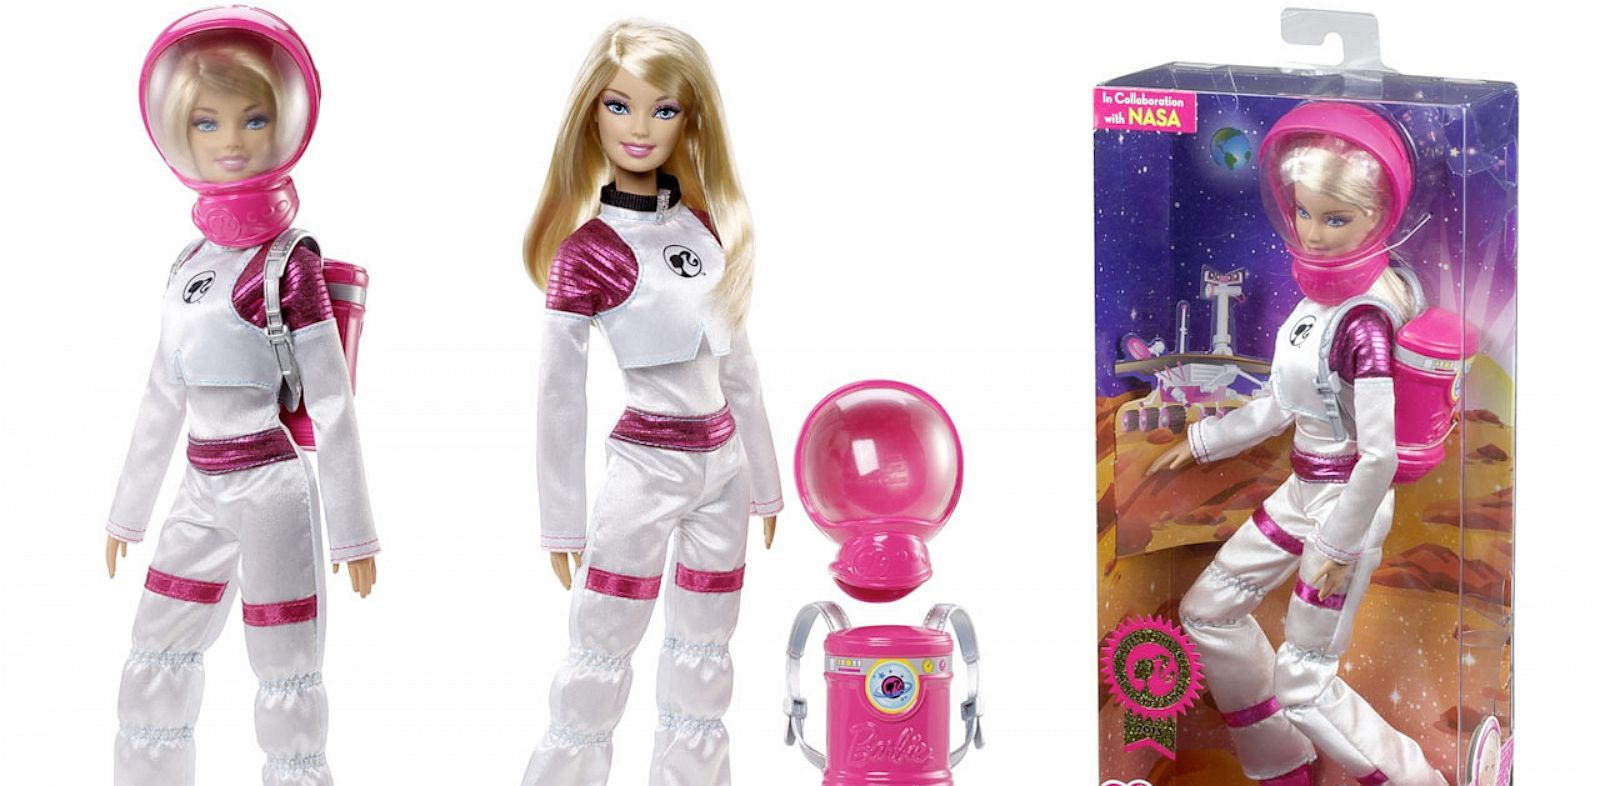 PHOTO: Mars Explorer Barbie